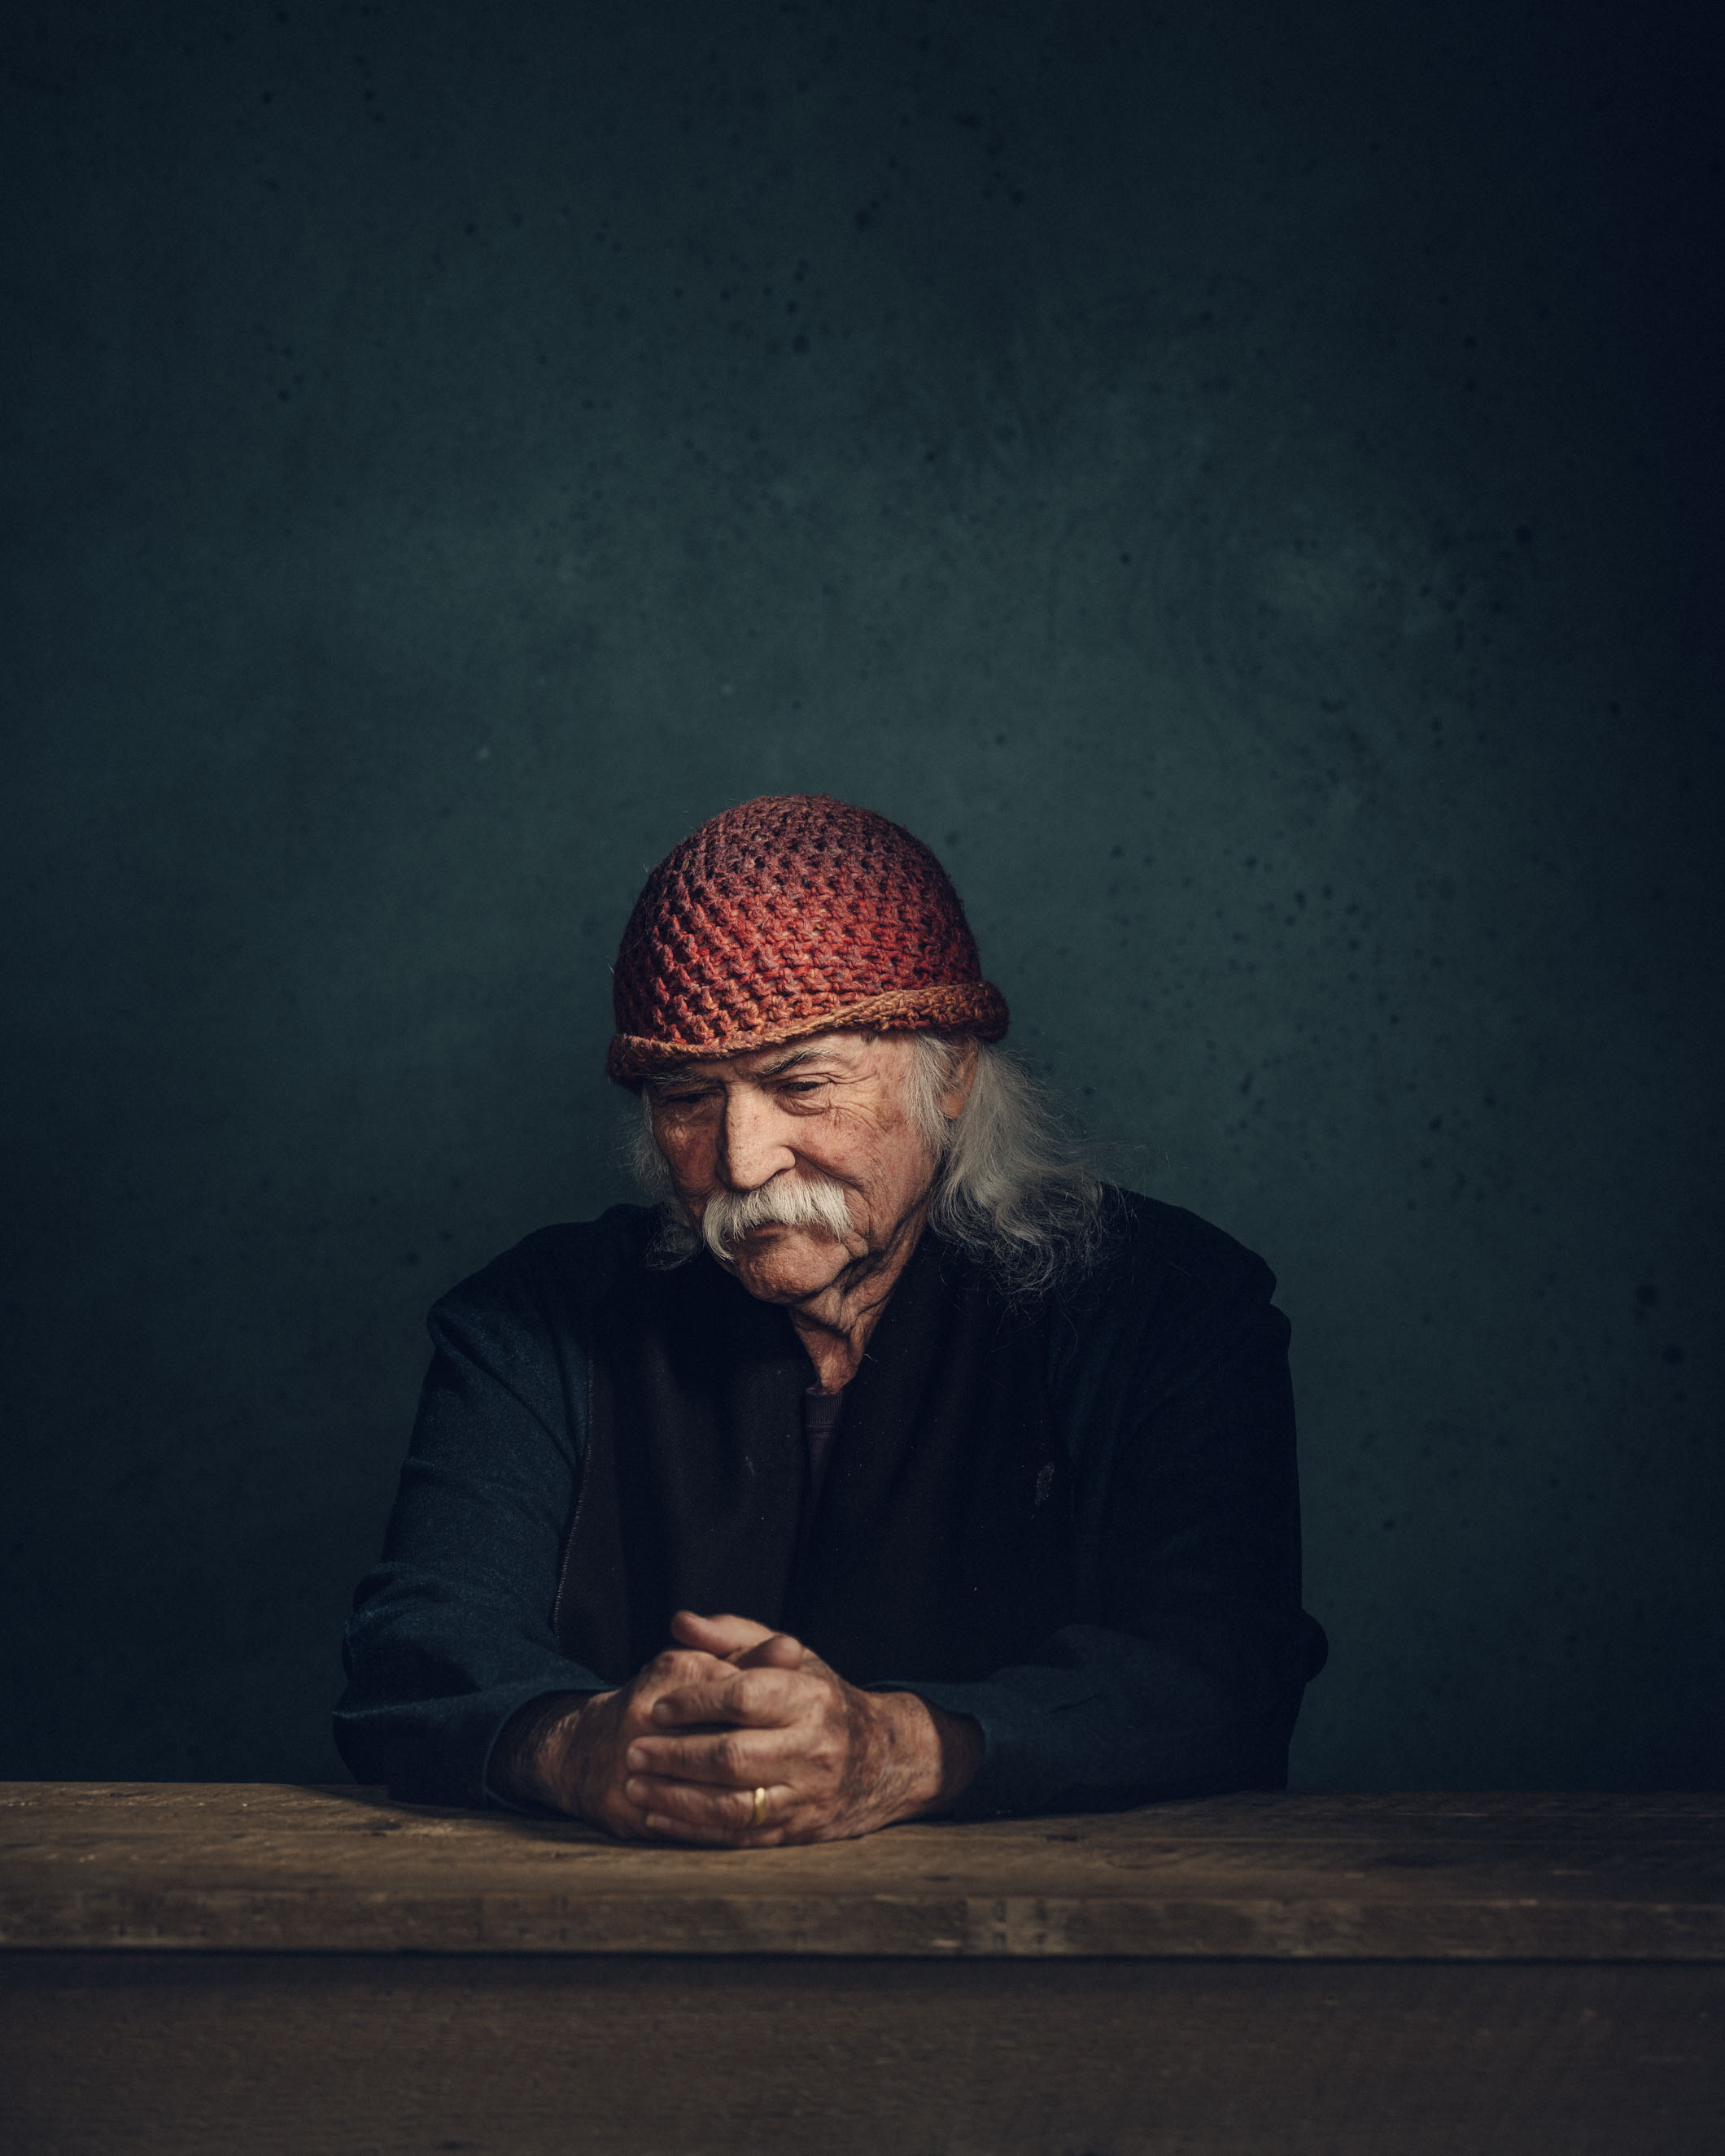 190125_12-RememberMyName_121_David_Crosby